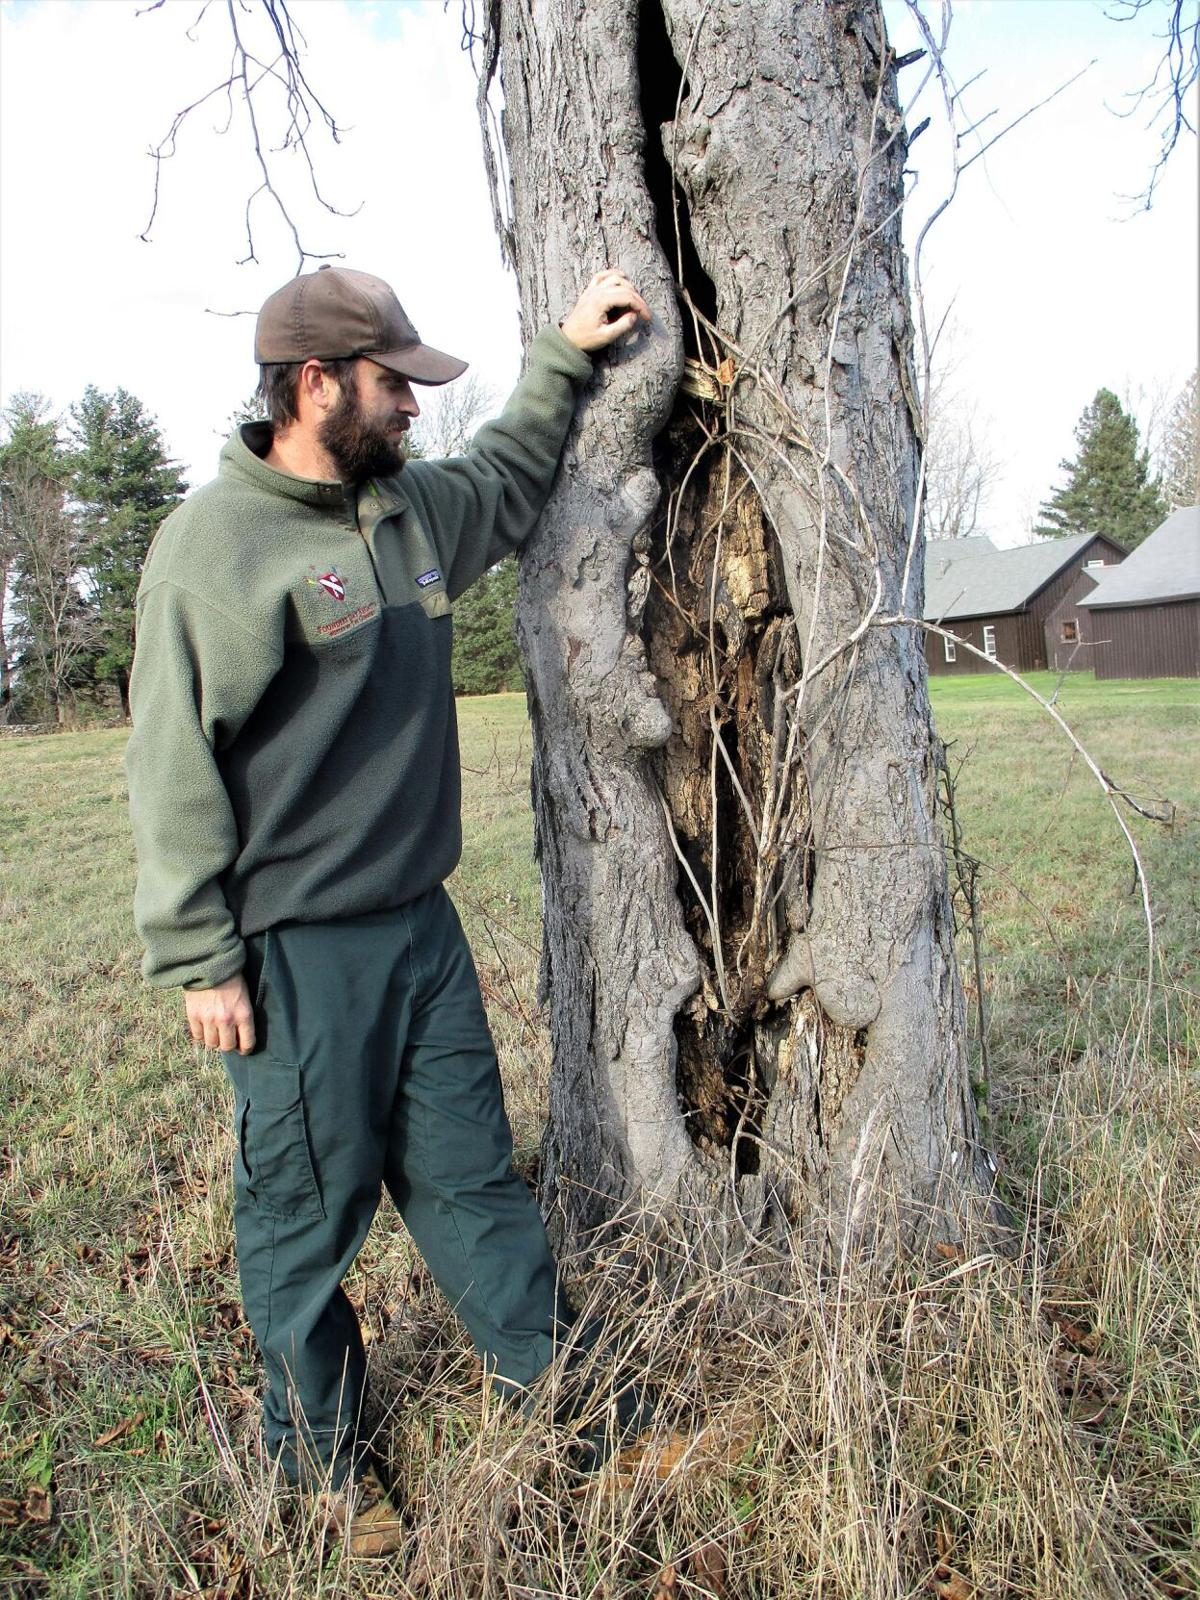 In Litchfield, Friends of Topsmead set up fund to replace dead trees